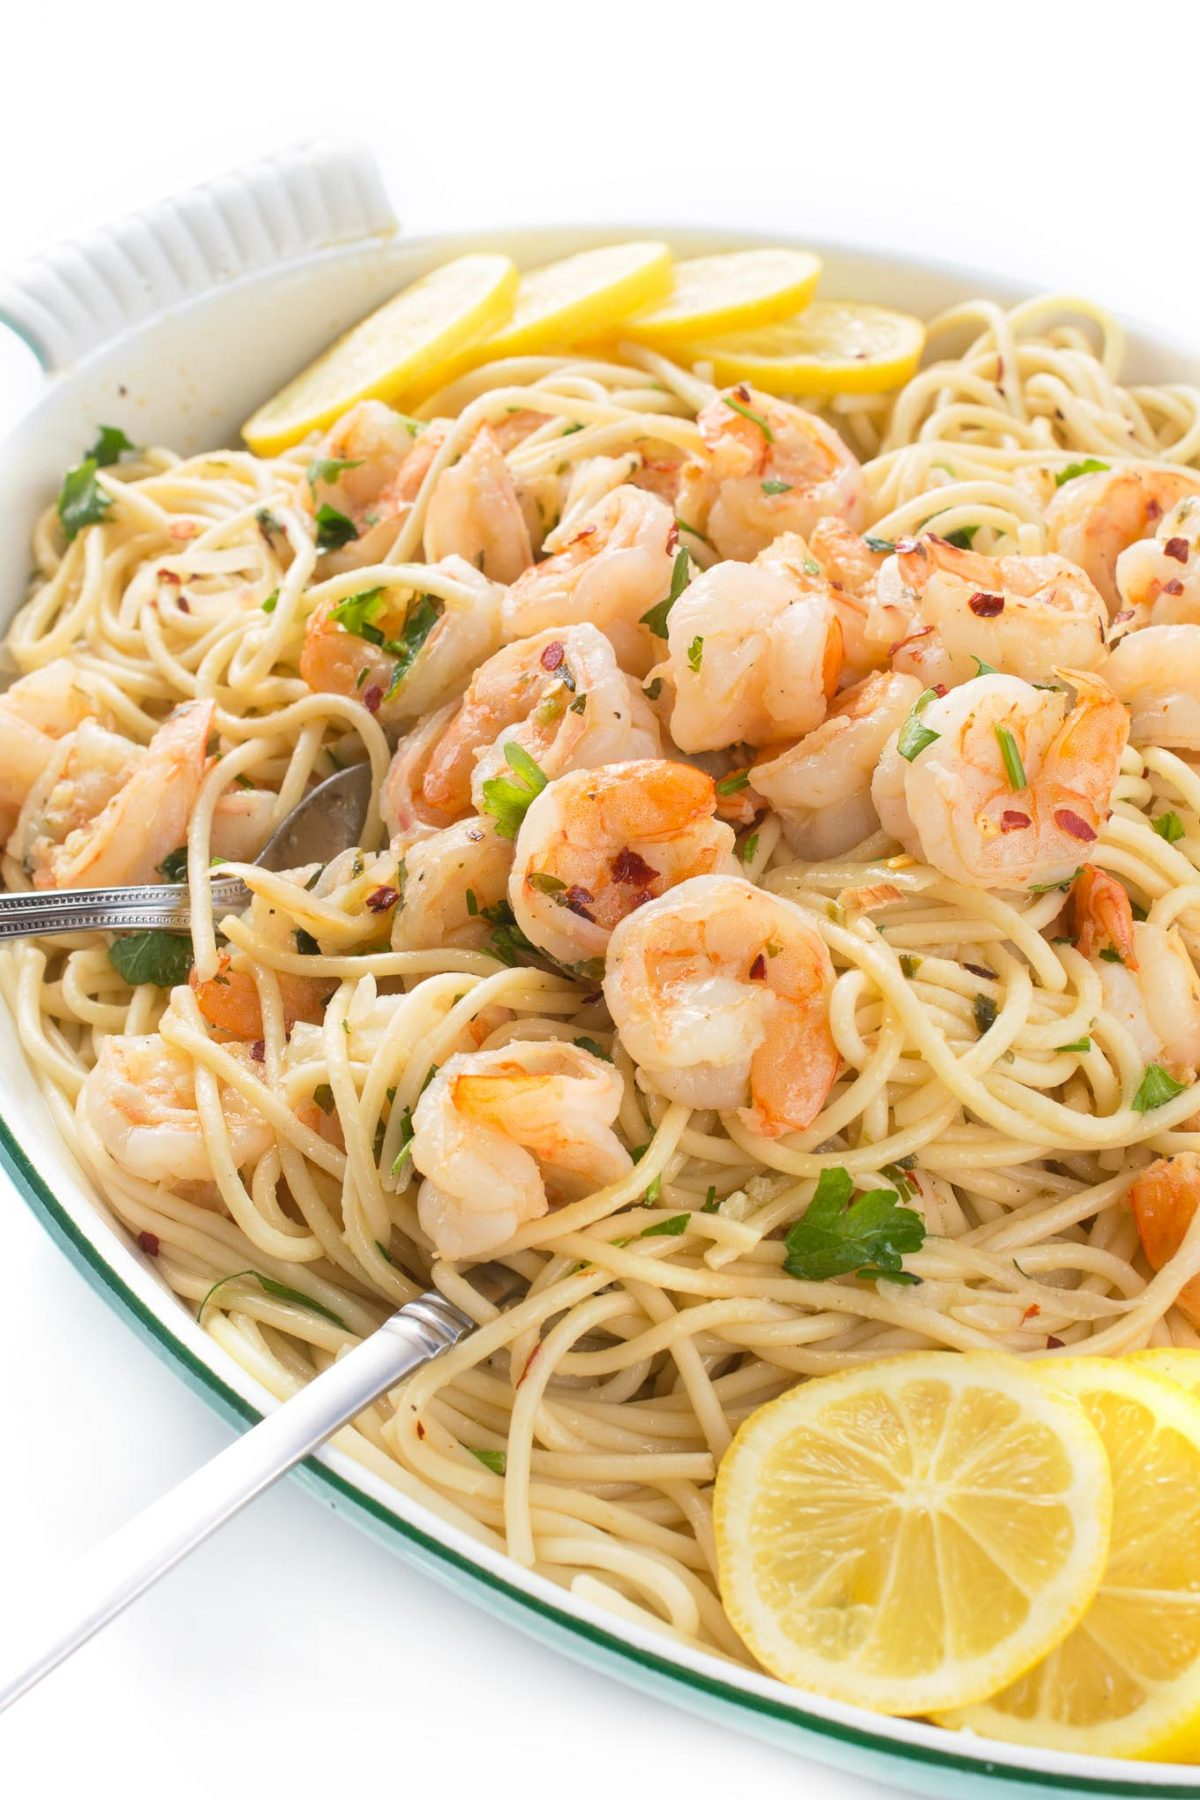 Authentic Shrimp Scampi with Pasta or Zoodles - an authentic Italian recipe with deliciously fragrant garlic shrimp and an easy white wine - butter sauce. 15 minutes to make it! Recipe from Food From Our Ancestors: The Ultimate Italian Sunday Dinner by Liz Della Croce @TheLemonBowl